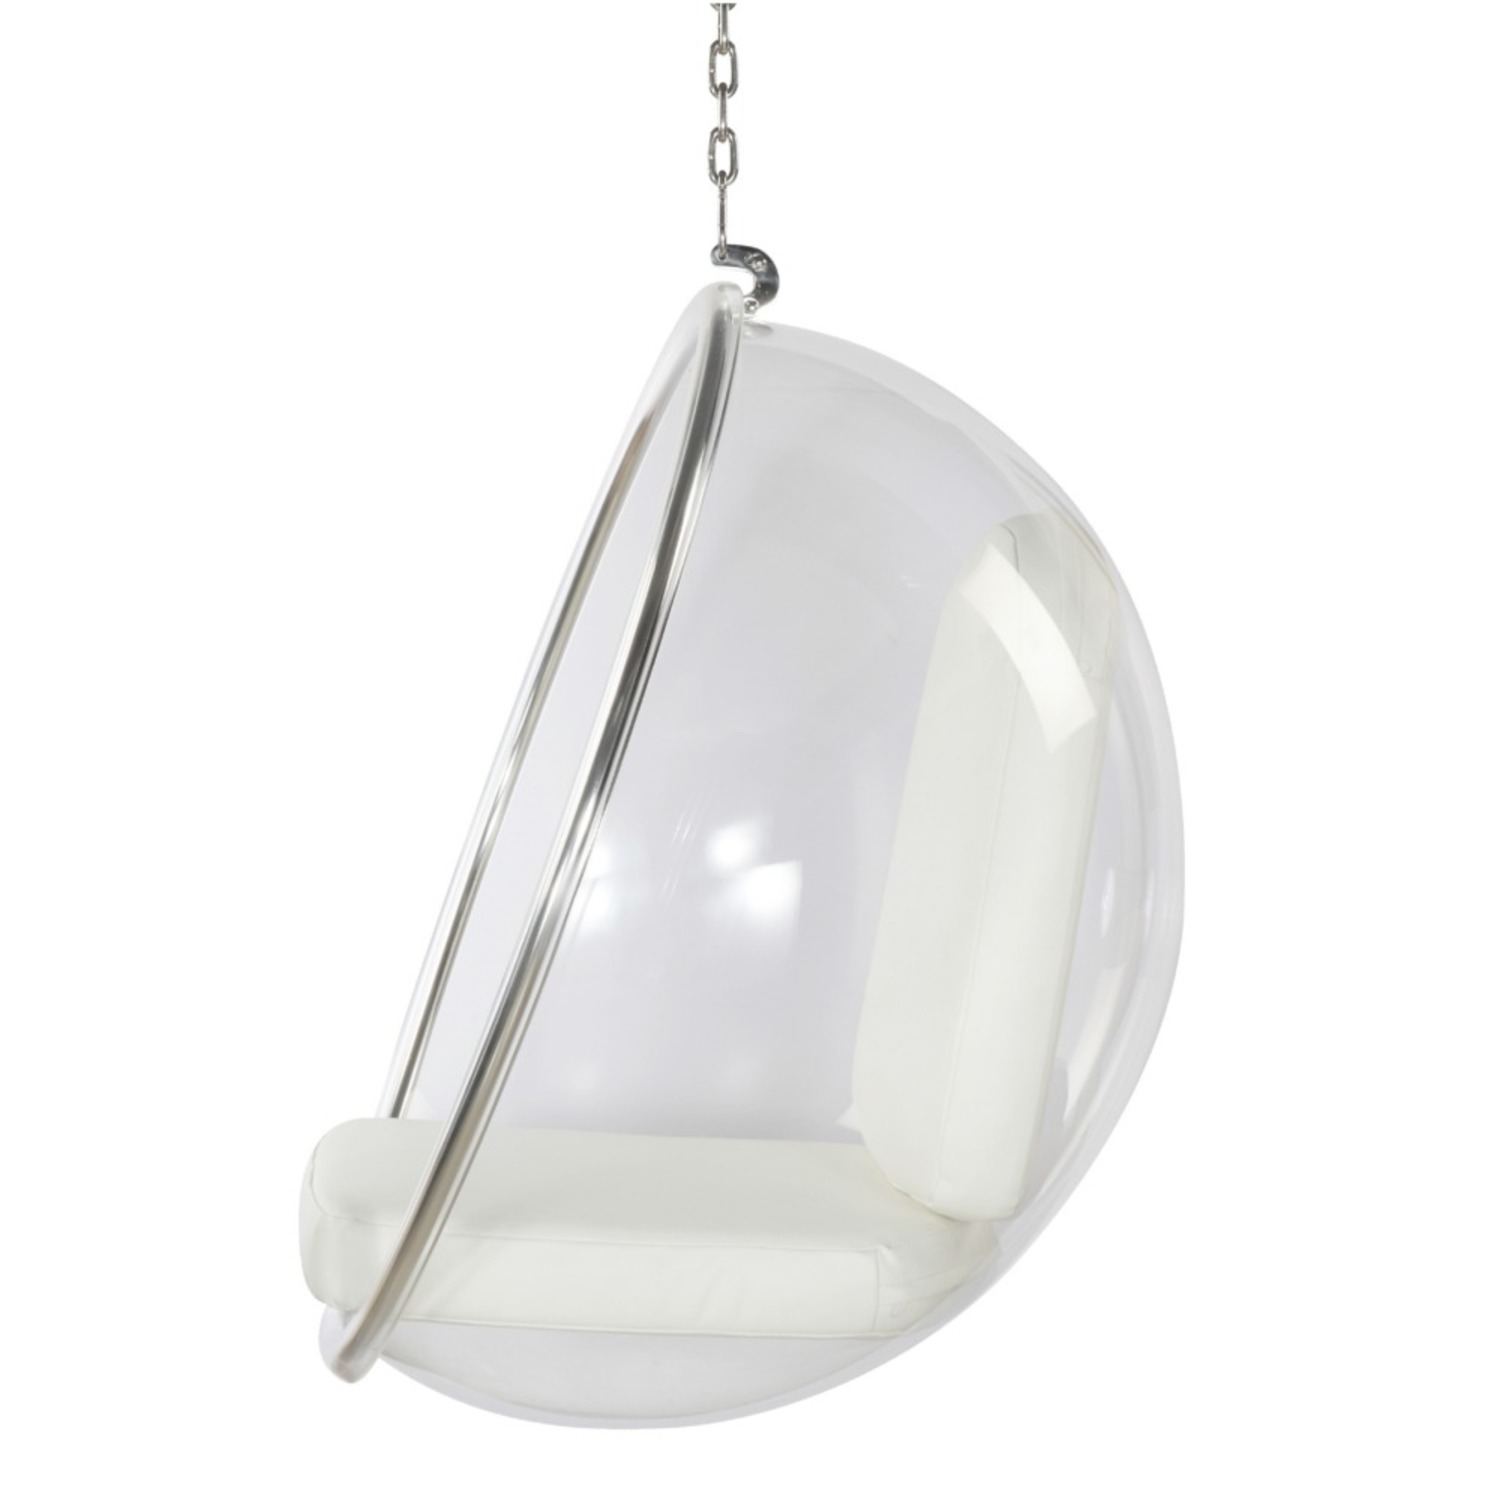 Hanging Chair In Clear Acrylic & White PU Leather - image-3